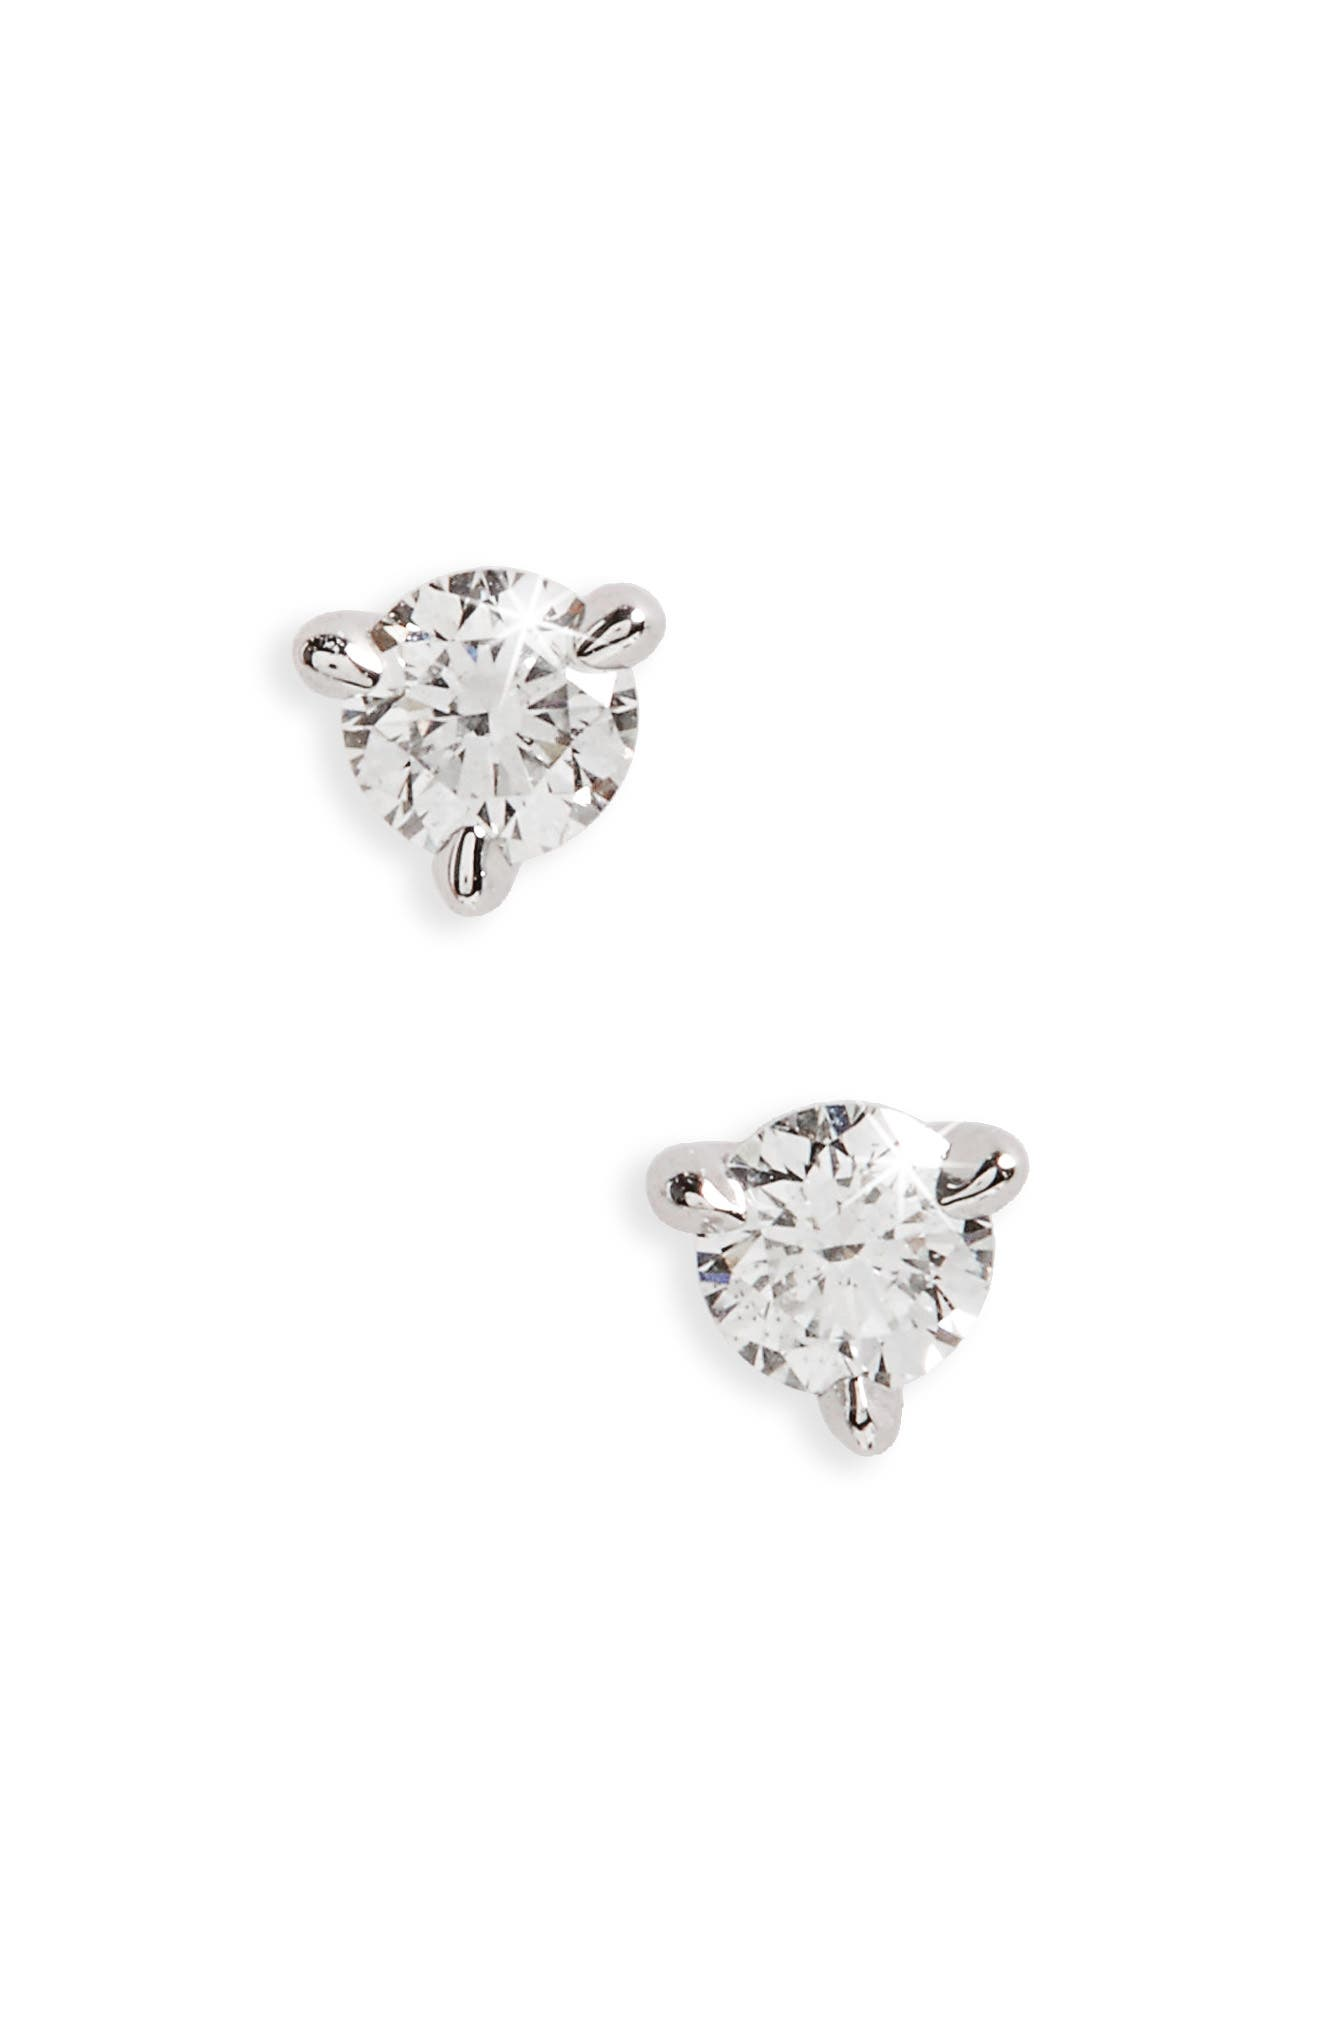 0.25ct tw Diamond & Platinum Stud Earrings,                             Alternate thumbnail 2, color,                             PLATINUM